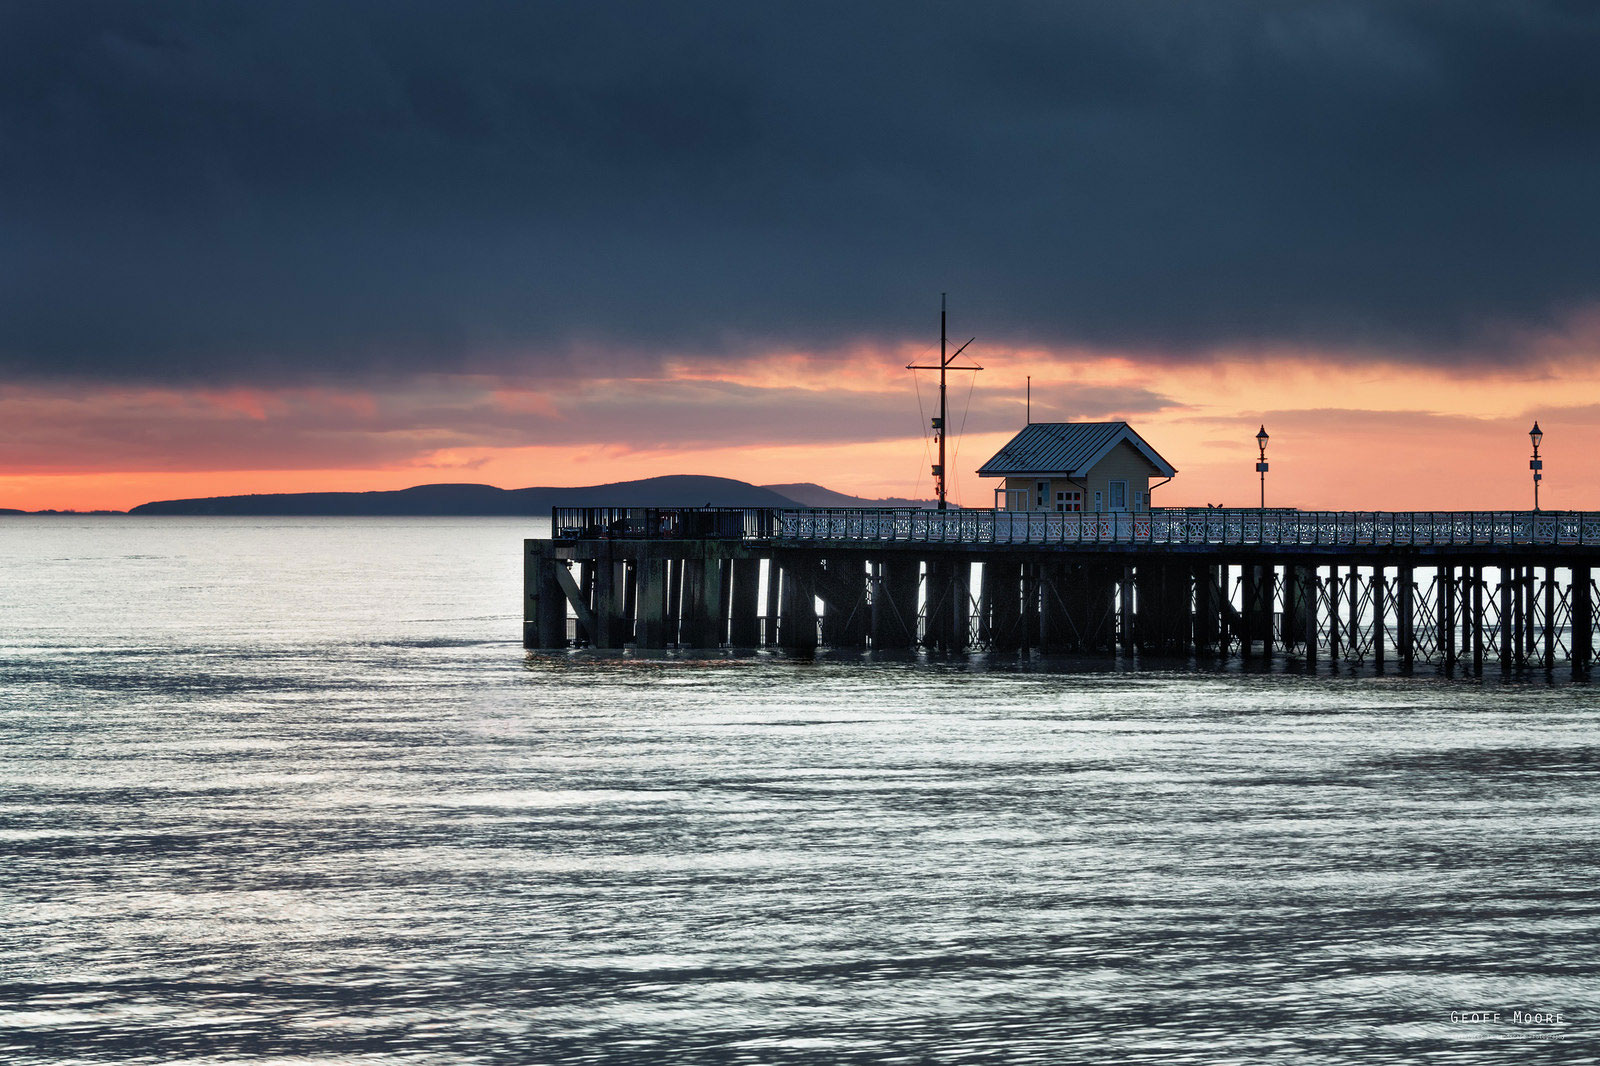 The Pier End - Penarth